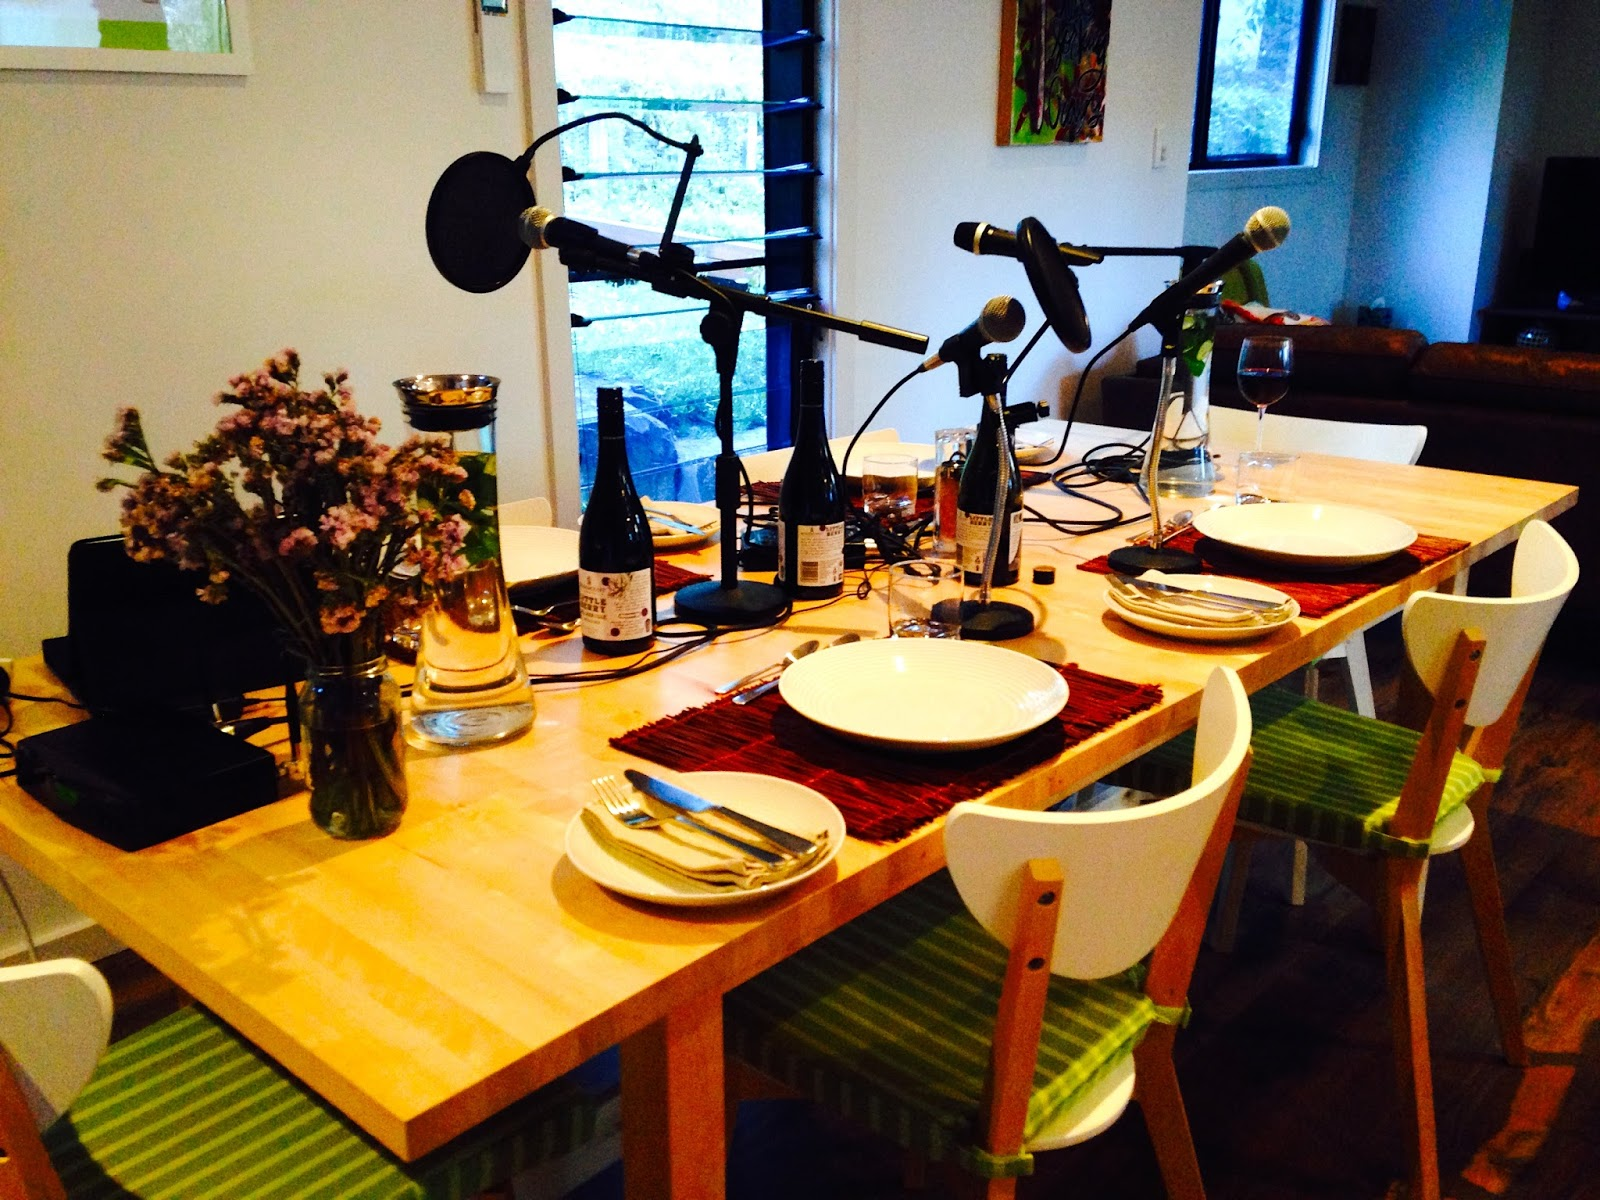 Another Boring Thursday night in Adelaide - Podcast set-up